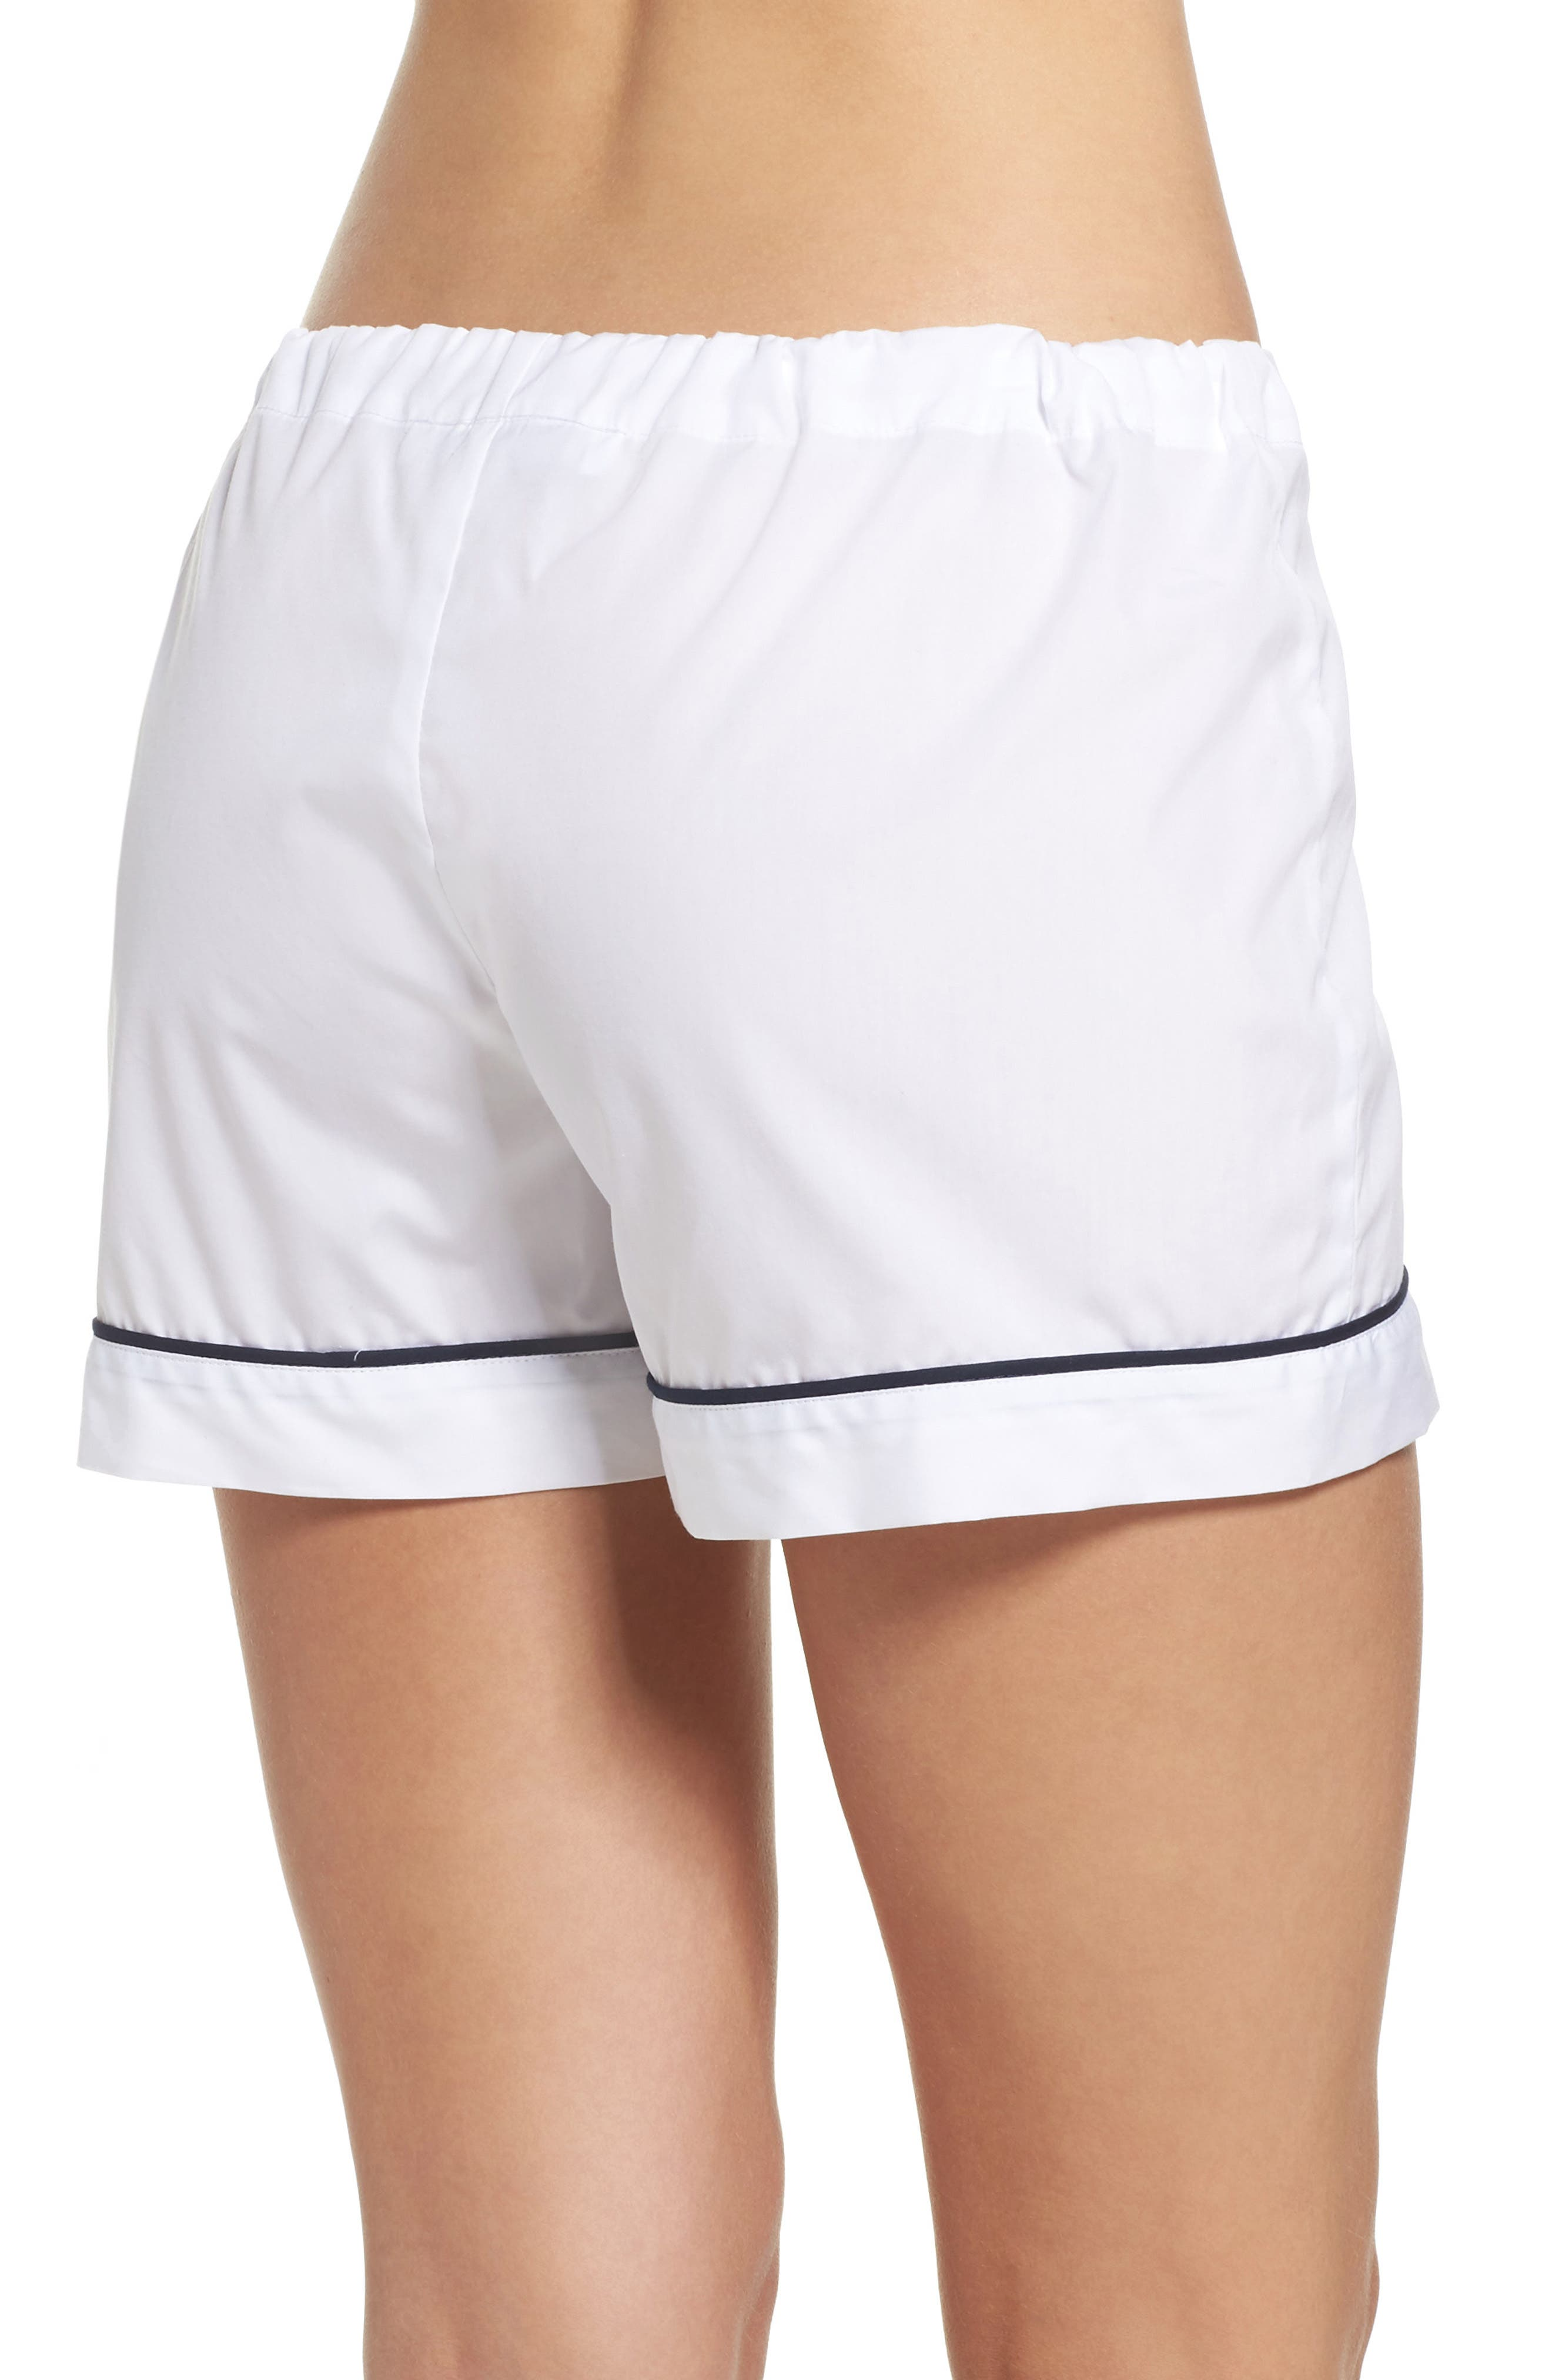 Alternate Image 2  - Pour Les Femmes Piped Pajama Shorts